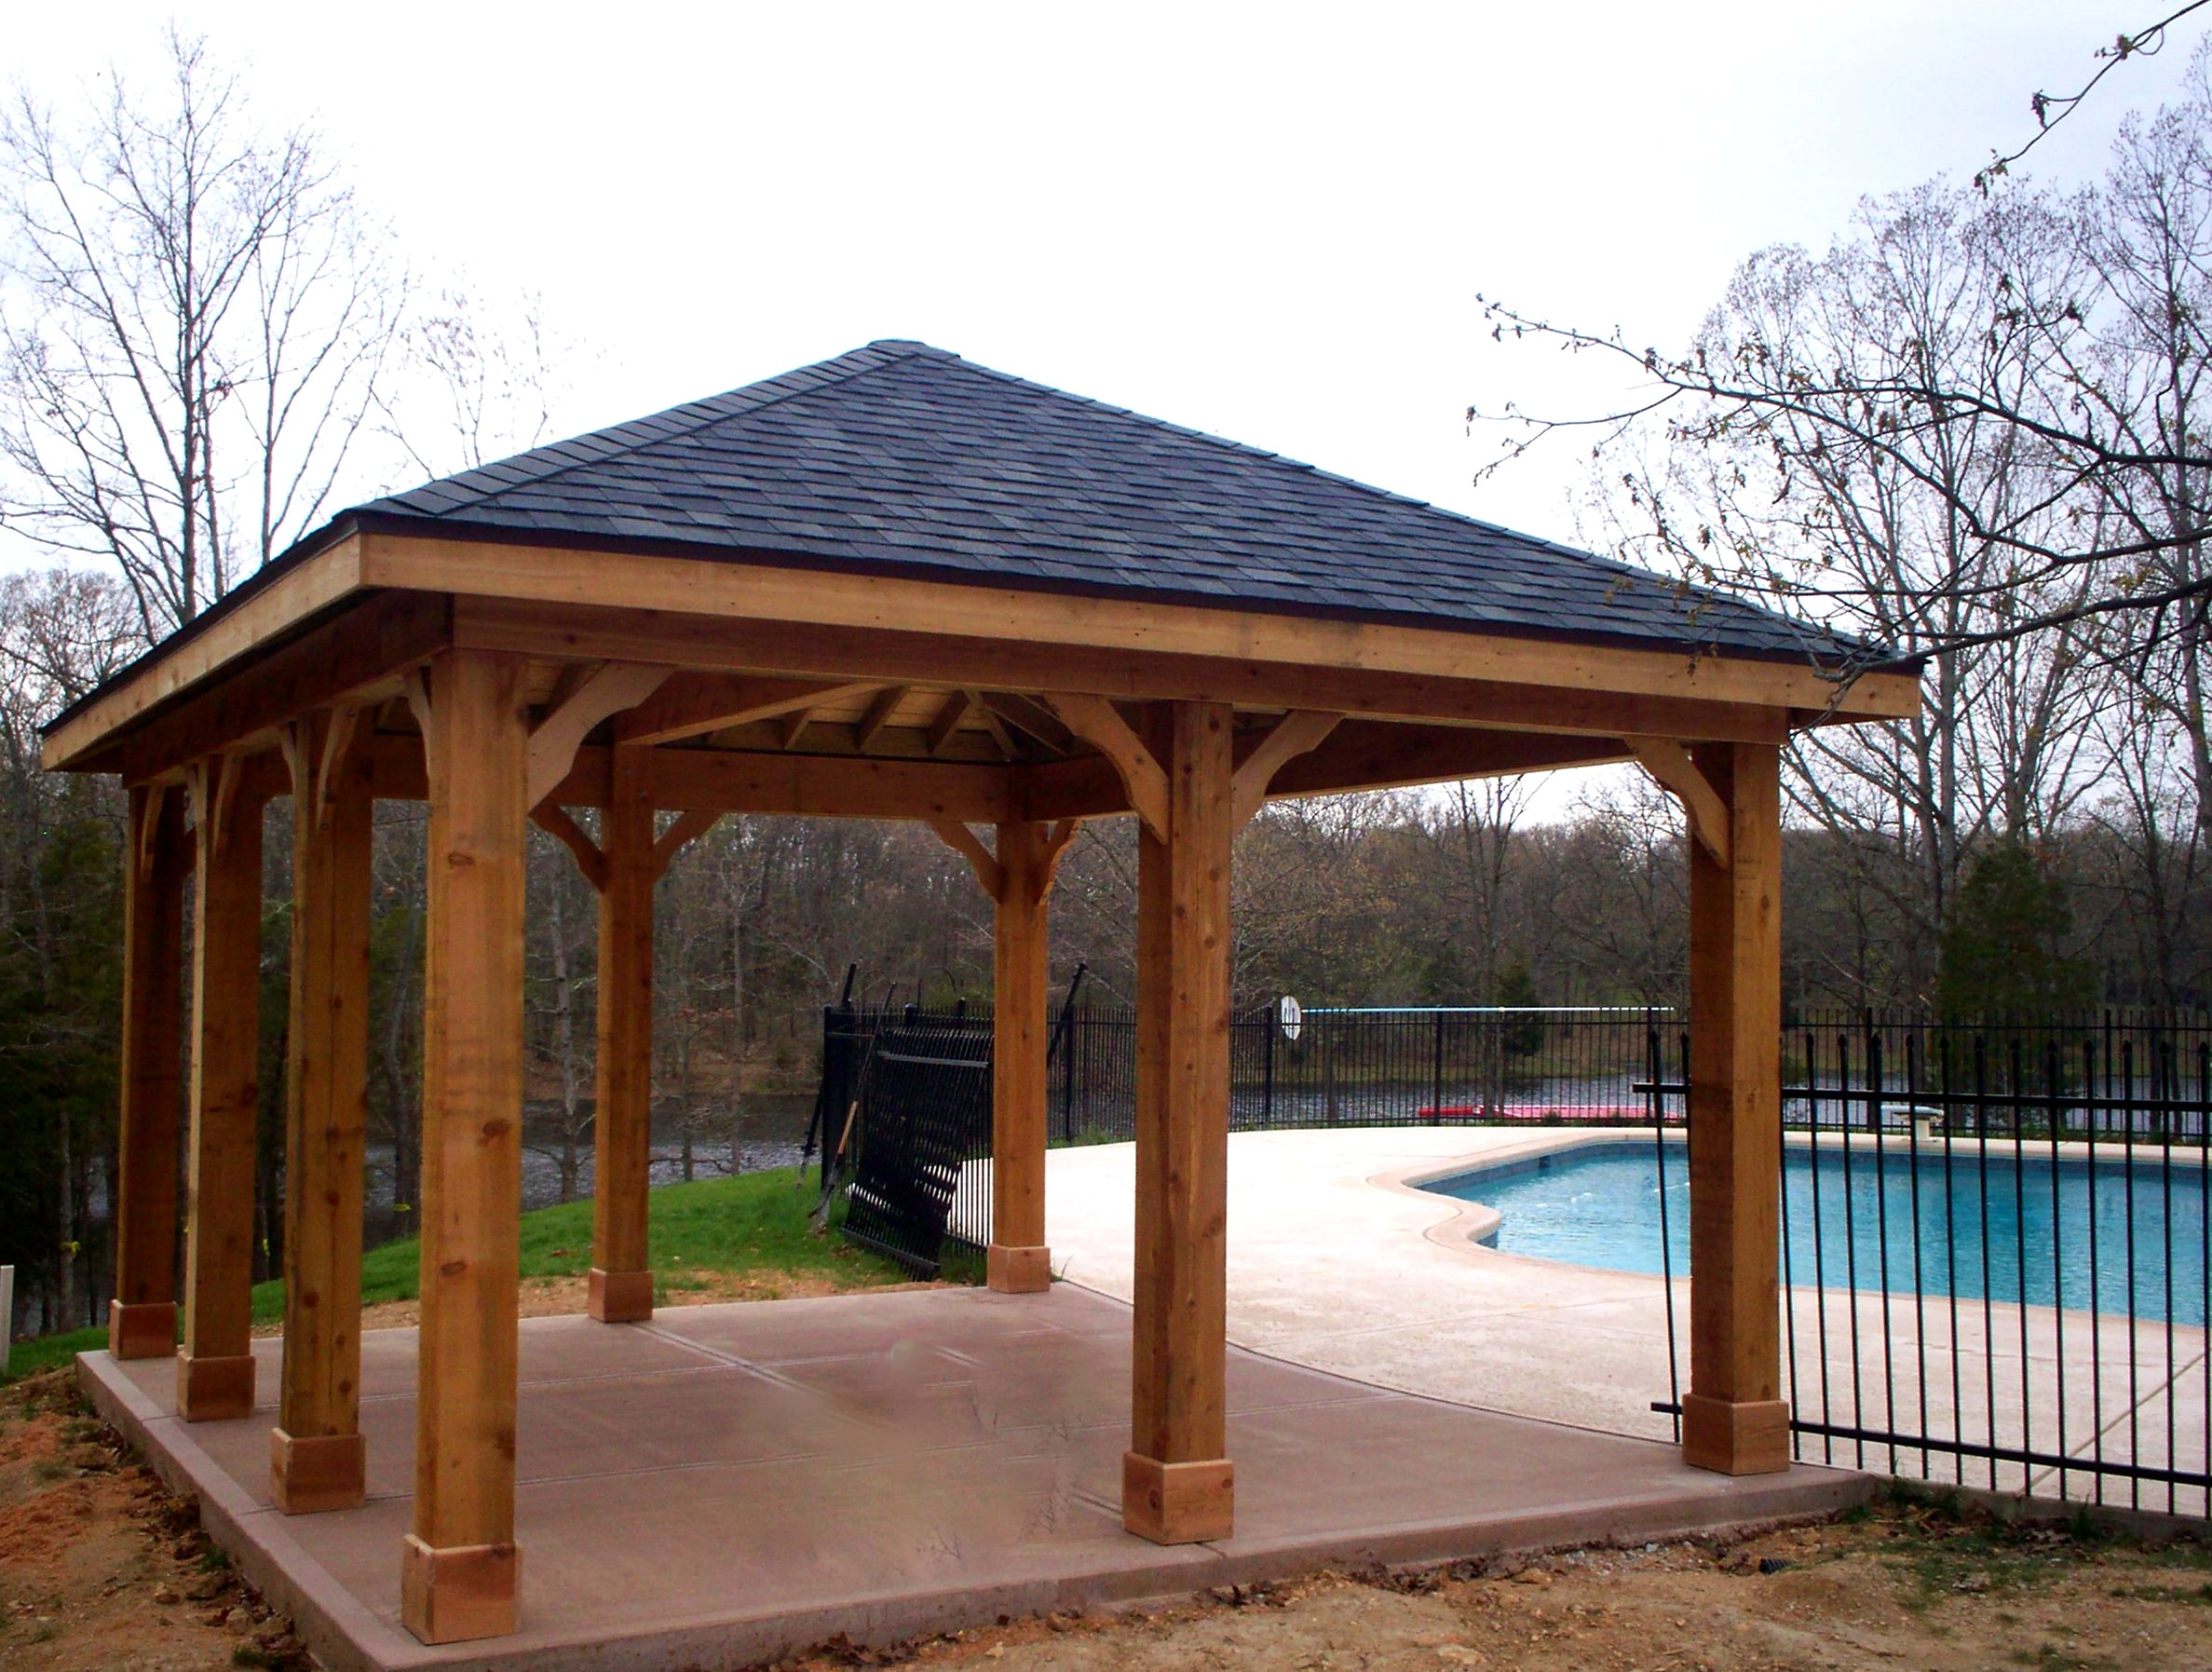 patio covers for shade and style st louis decks ForPatio Cover Plans